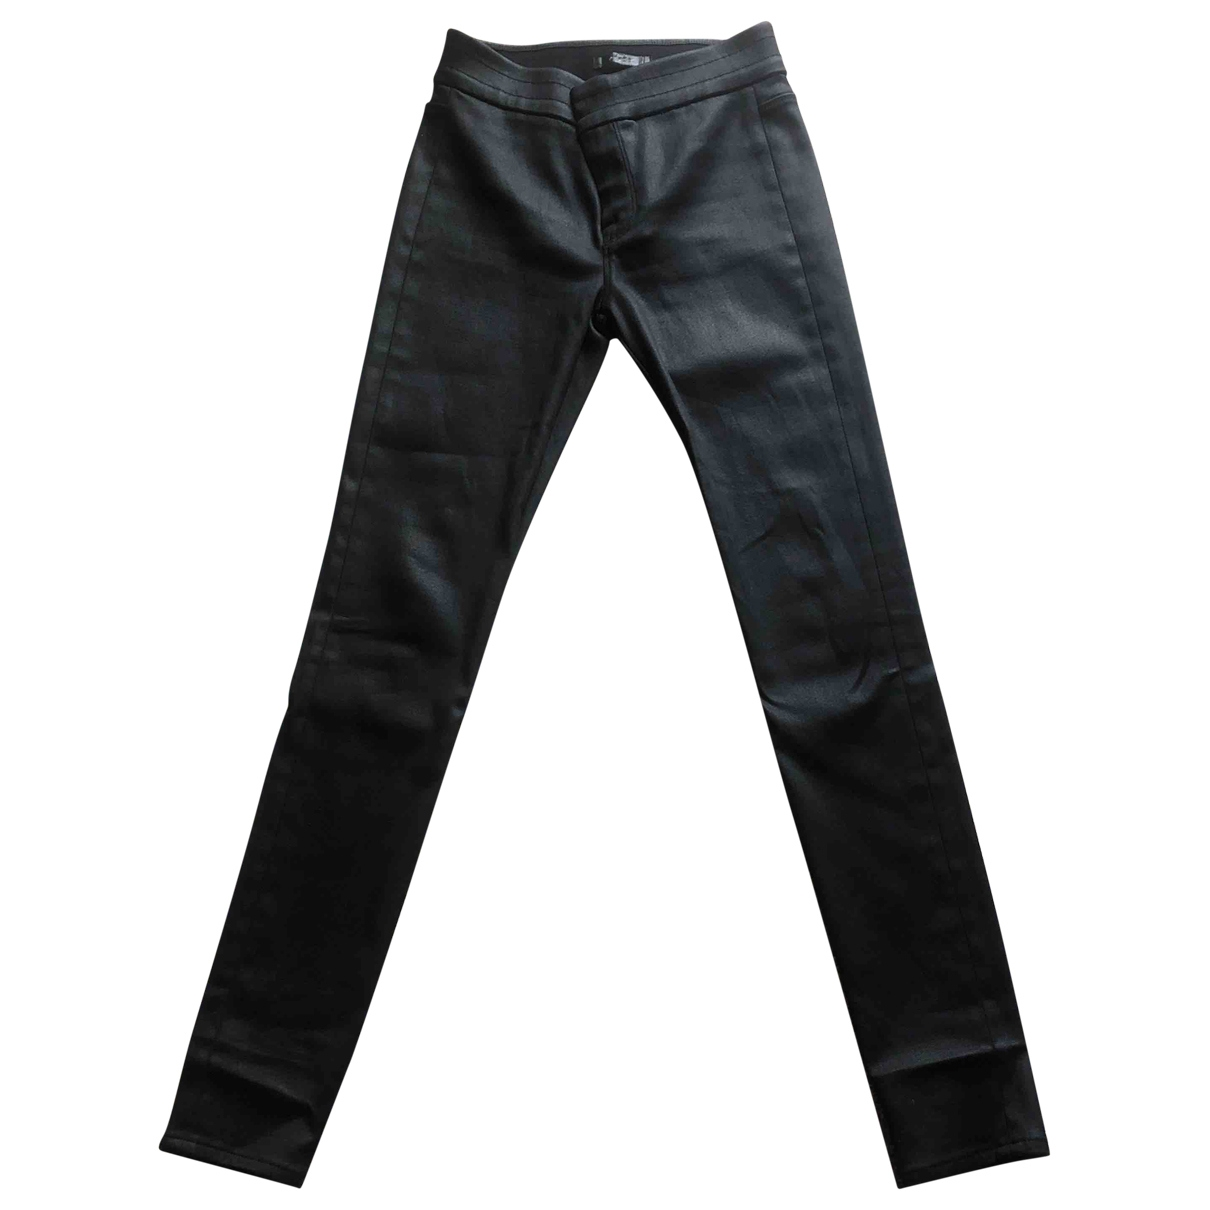 7 For All Mankind \N Black Trousers for Women 40 IT